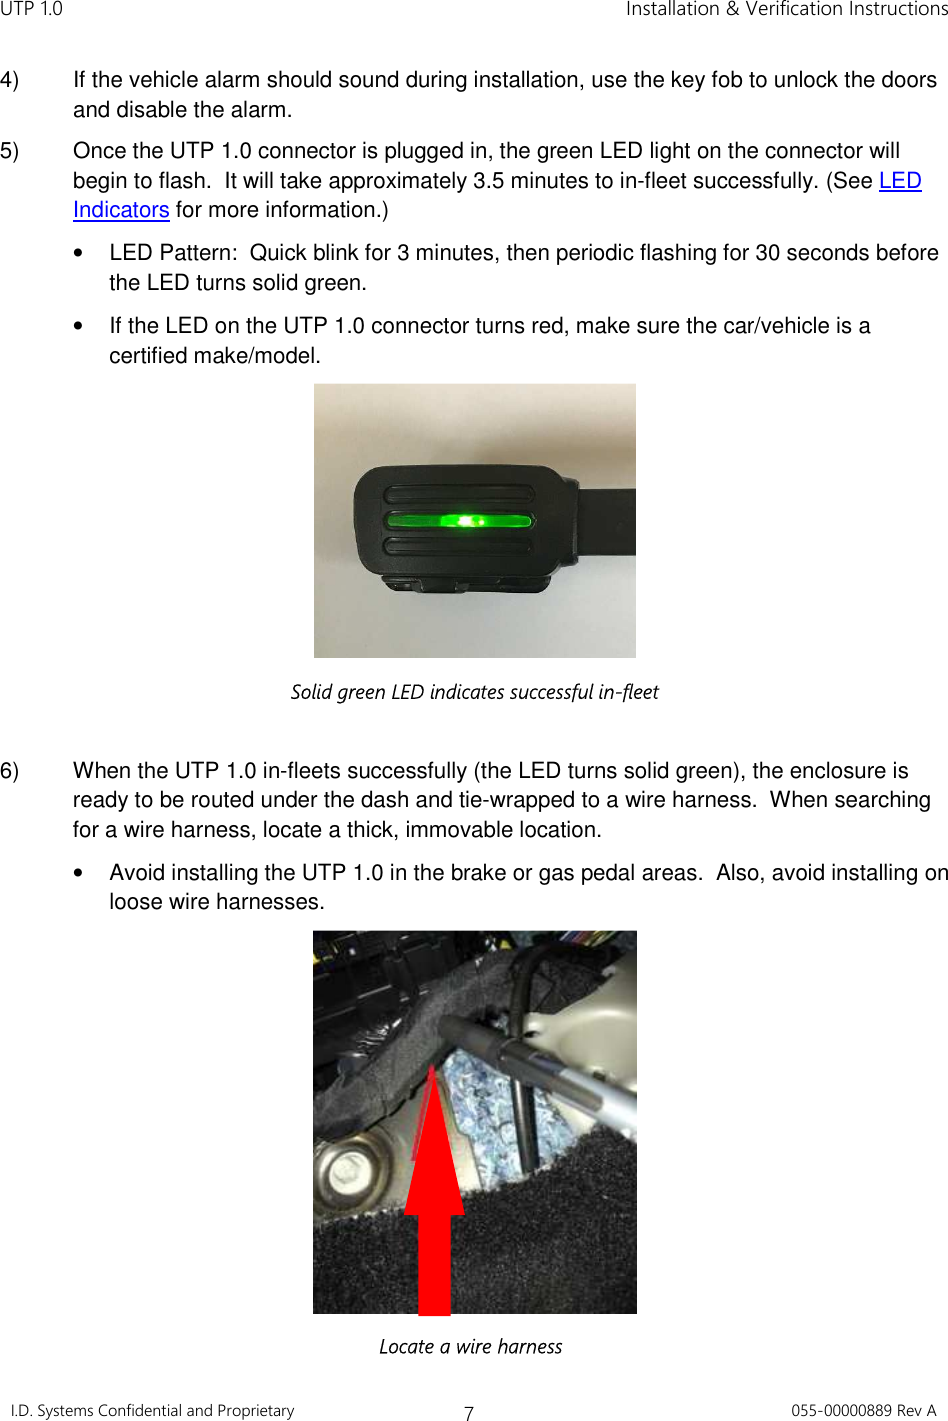 id Systems MVAC30 OBDII tracking Device User Manual 055 ... on wire leads, wire cap, wire clothing, wire antenna, wire sleeve, wire lamp, wire ball, wire connector, wire holder, wire nut,